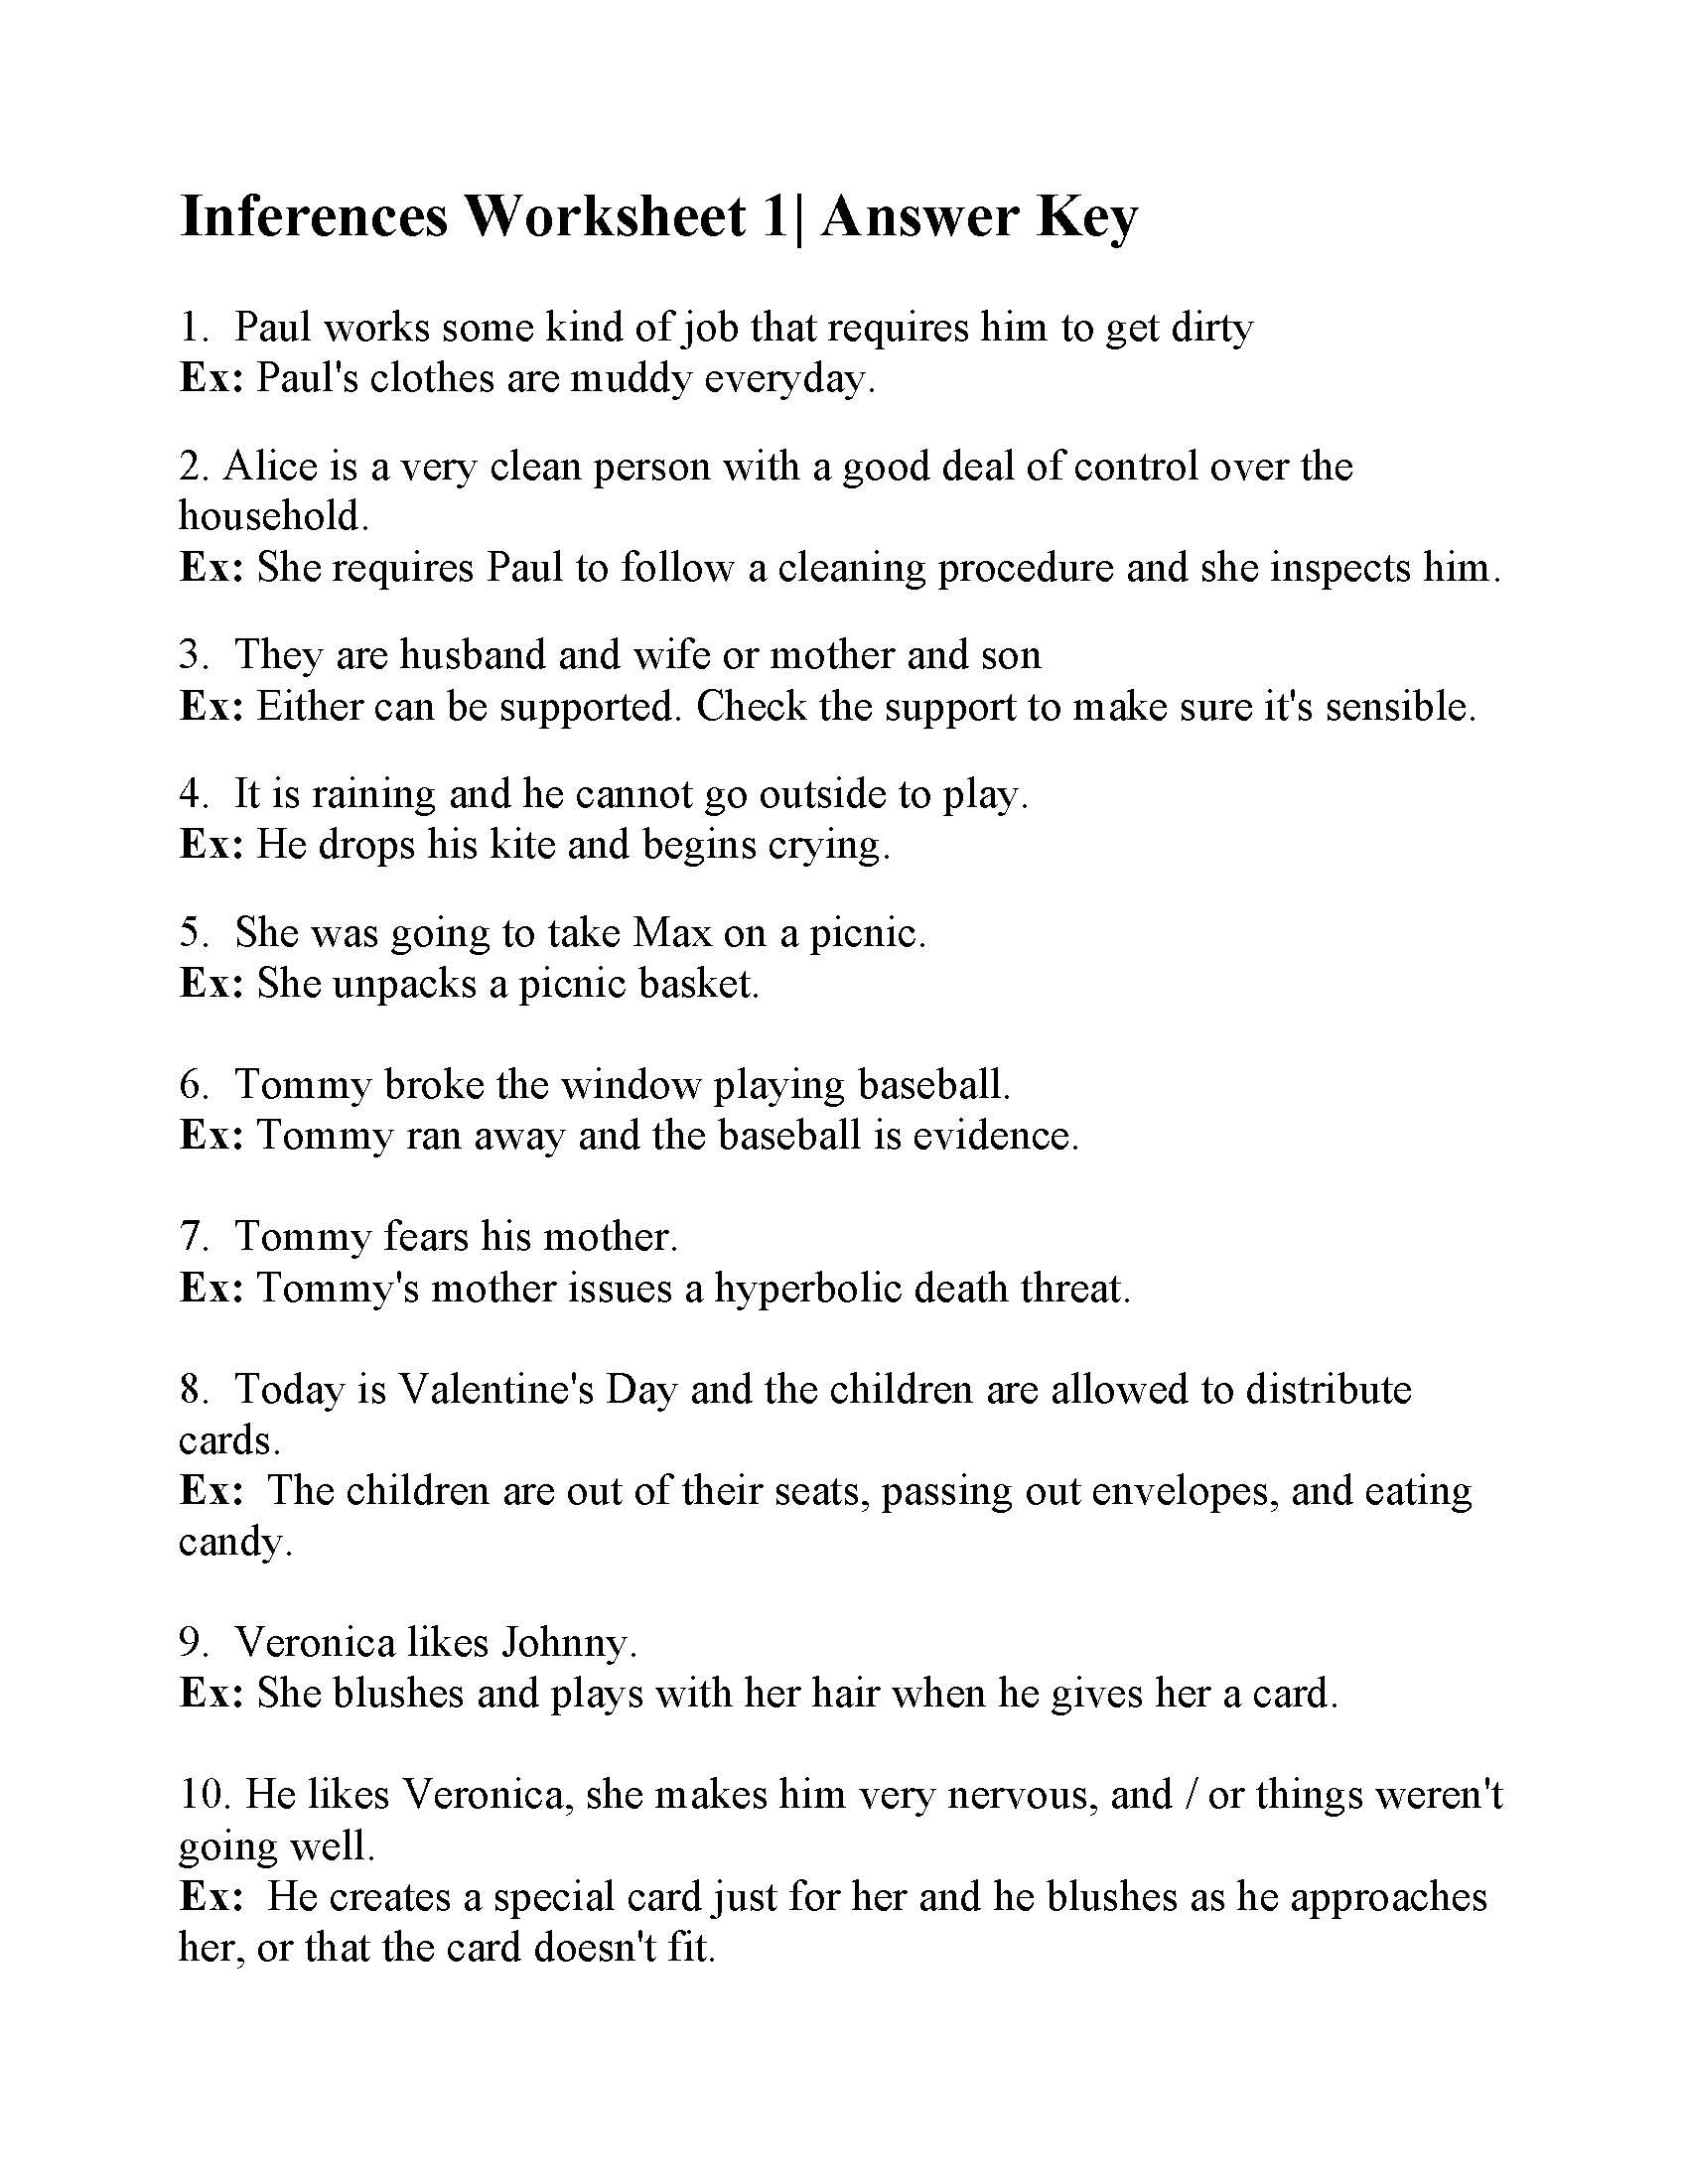 Middle School Inference Worksheets Inferences Worksheet Answers Practice Making Worksheets My